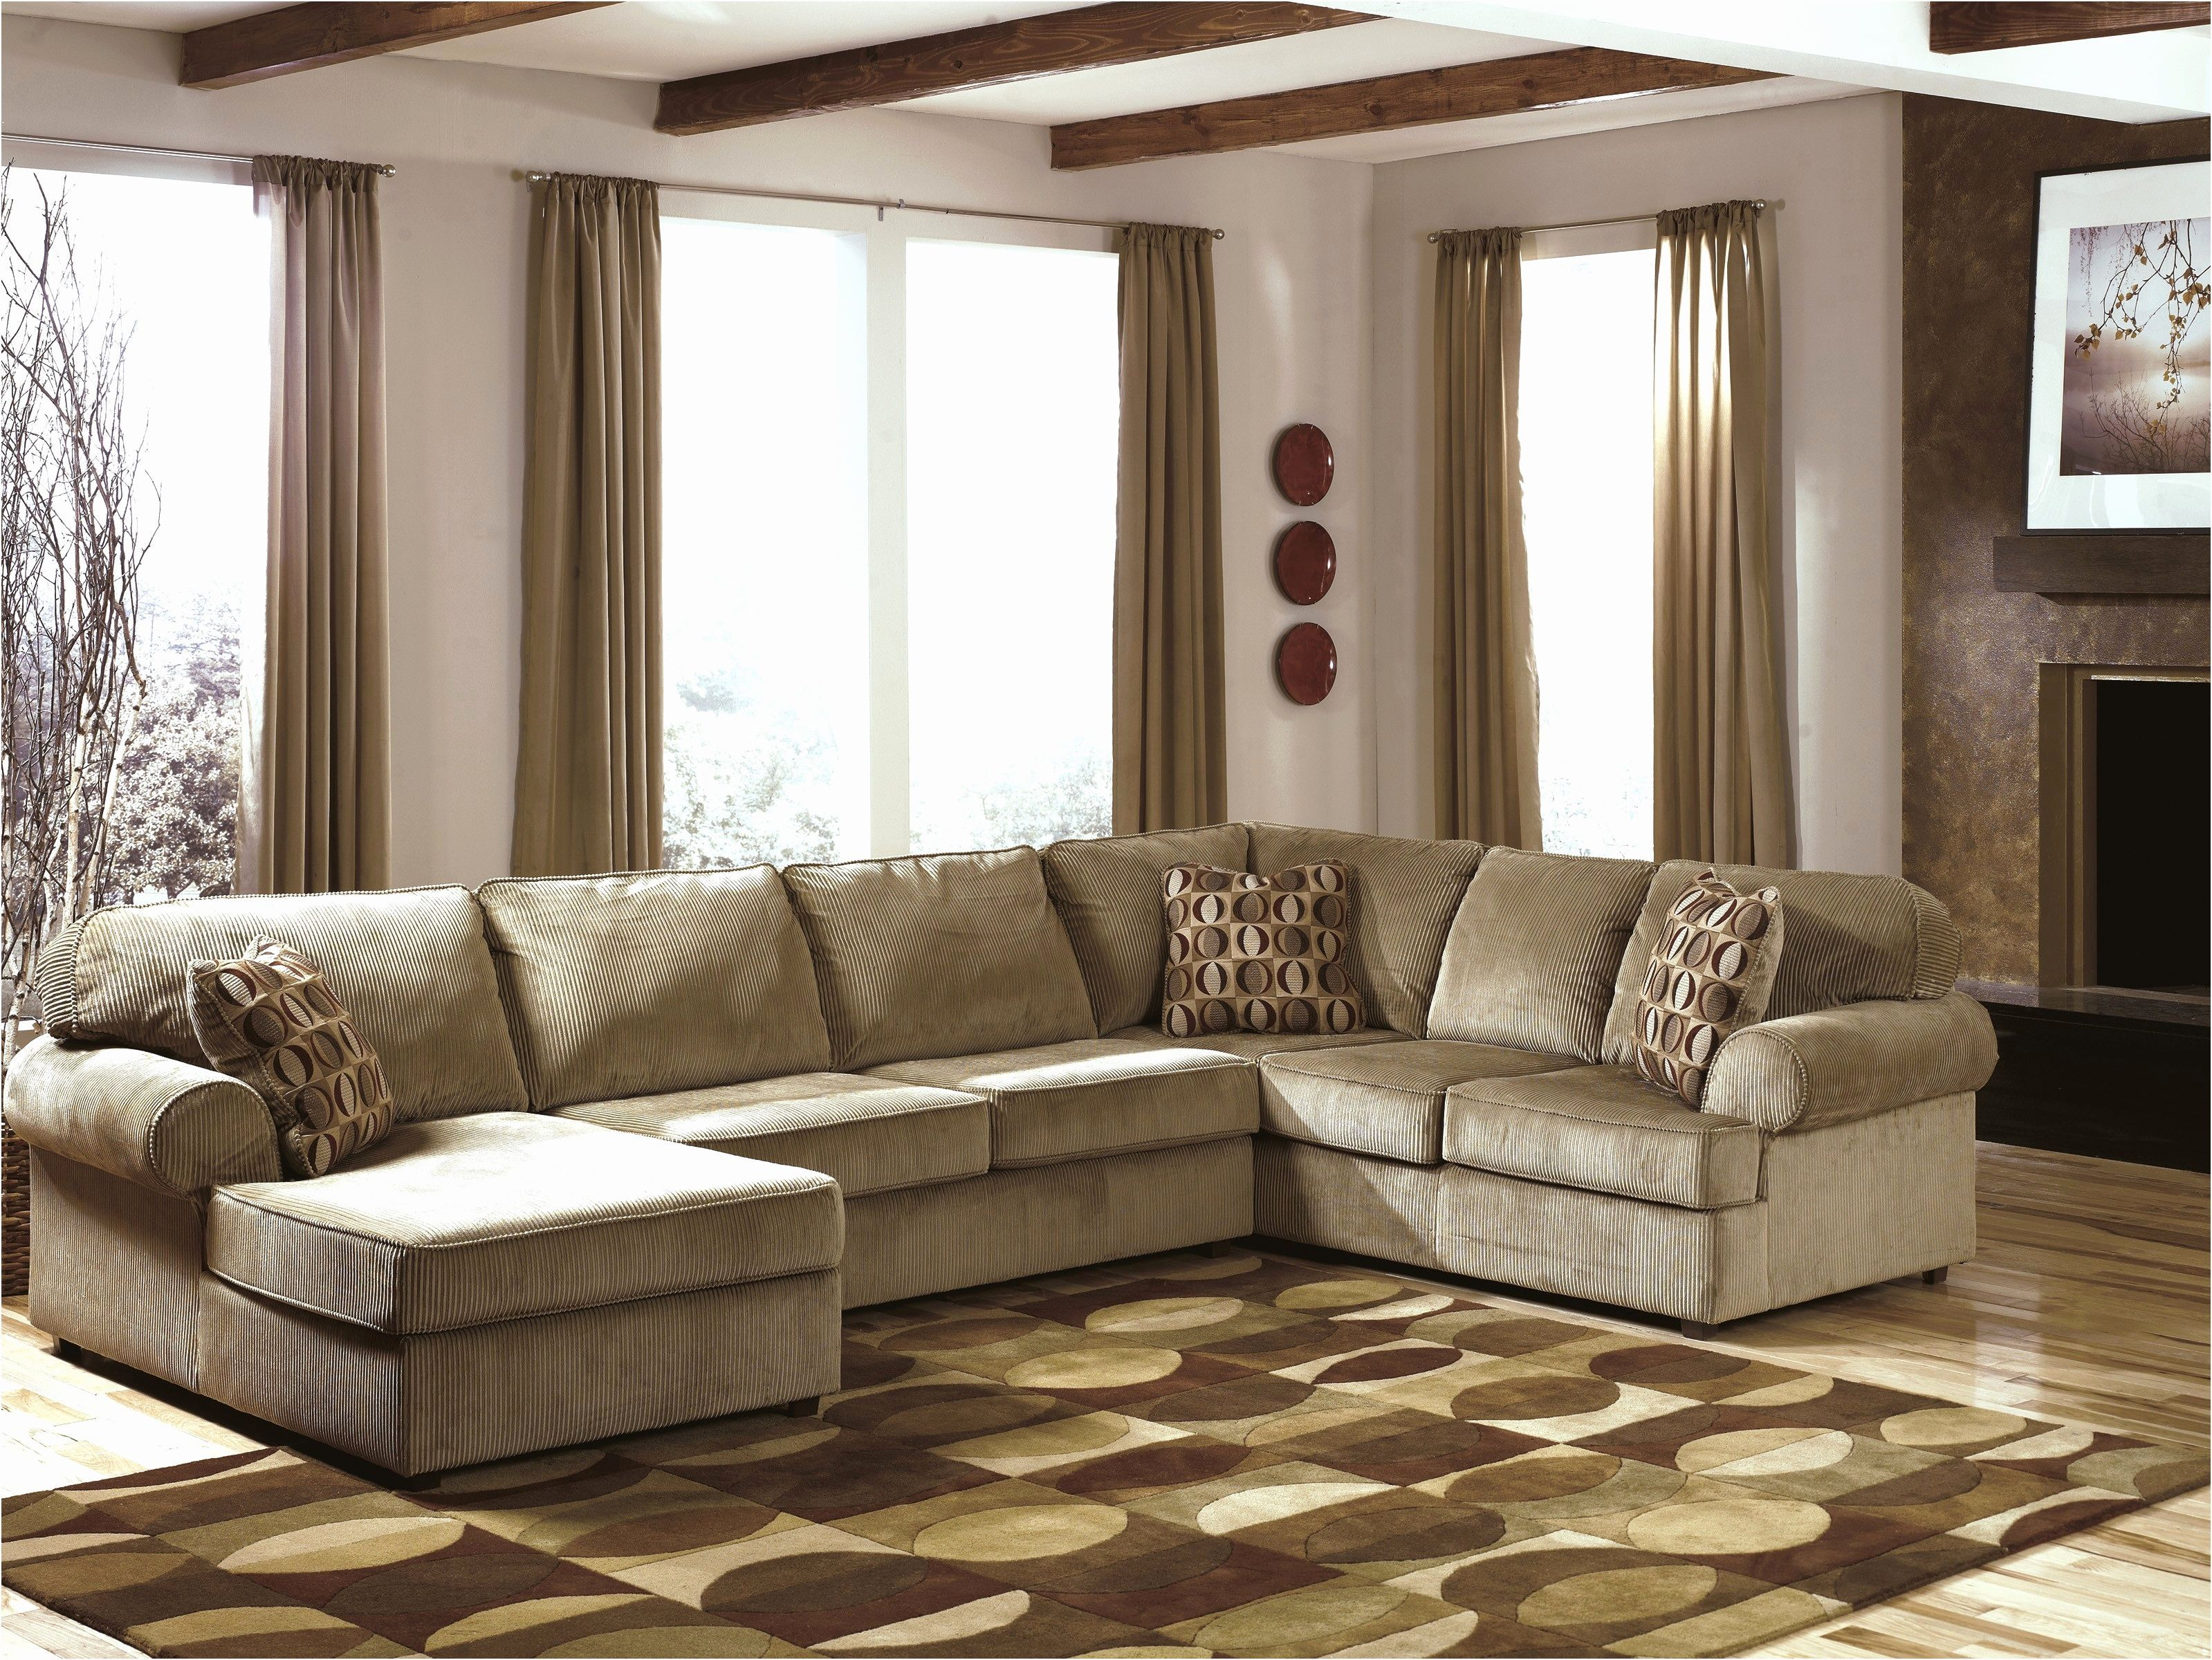 Lovely Sectional Sofas Under 1000 Graphics Sectional Sofas Under 1000 Luxury Ele Lovely Sectional Sofas Under 1000 Graphic In 2020 Elegant Sofa Sectional Sofa Sofa